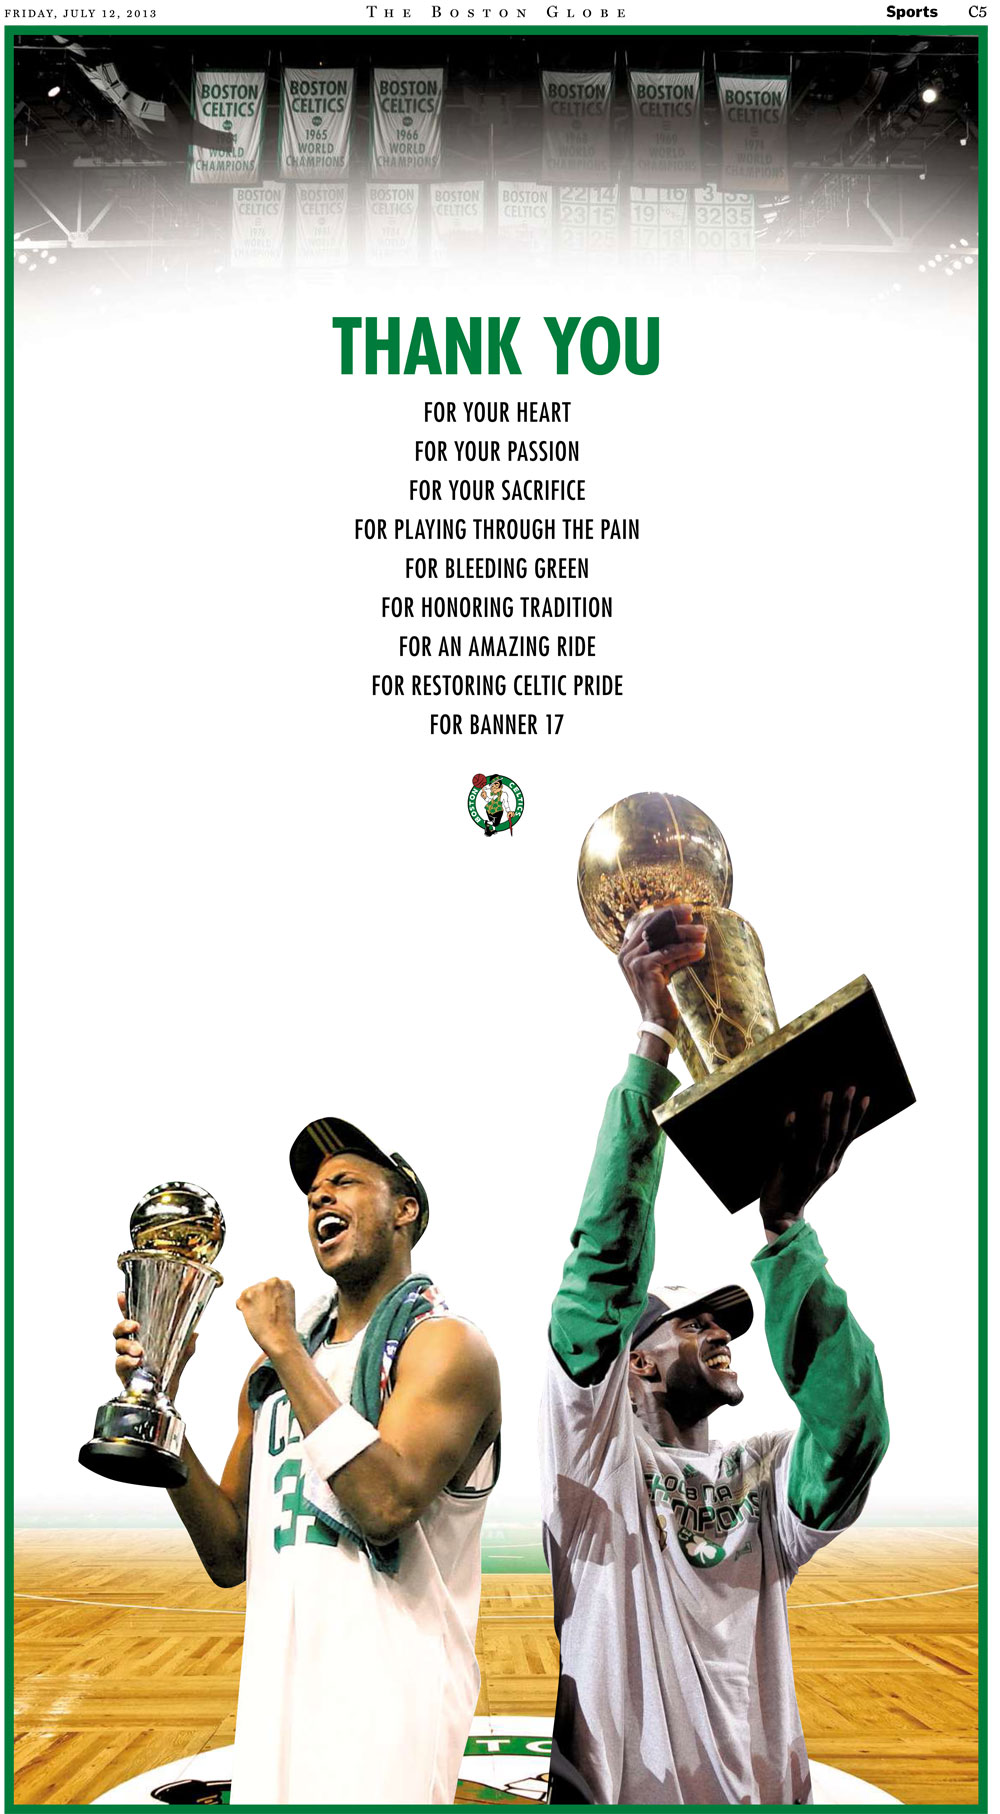 Celtics-Thanks